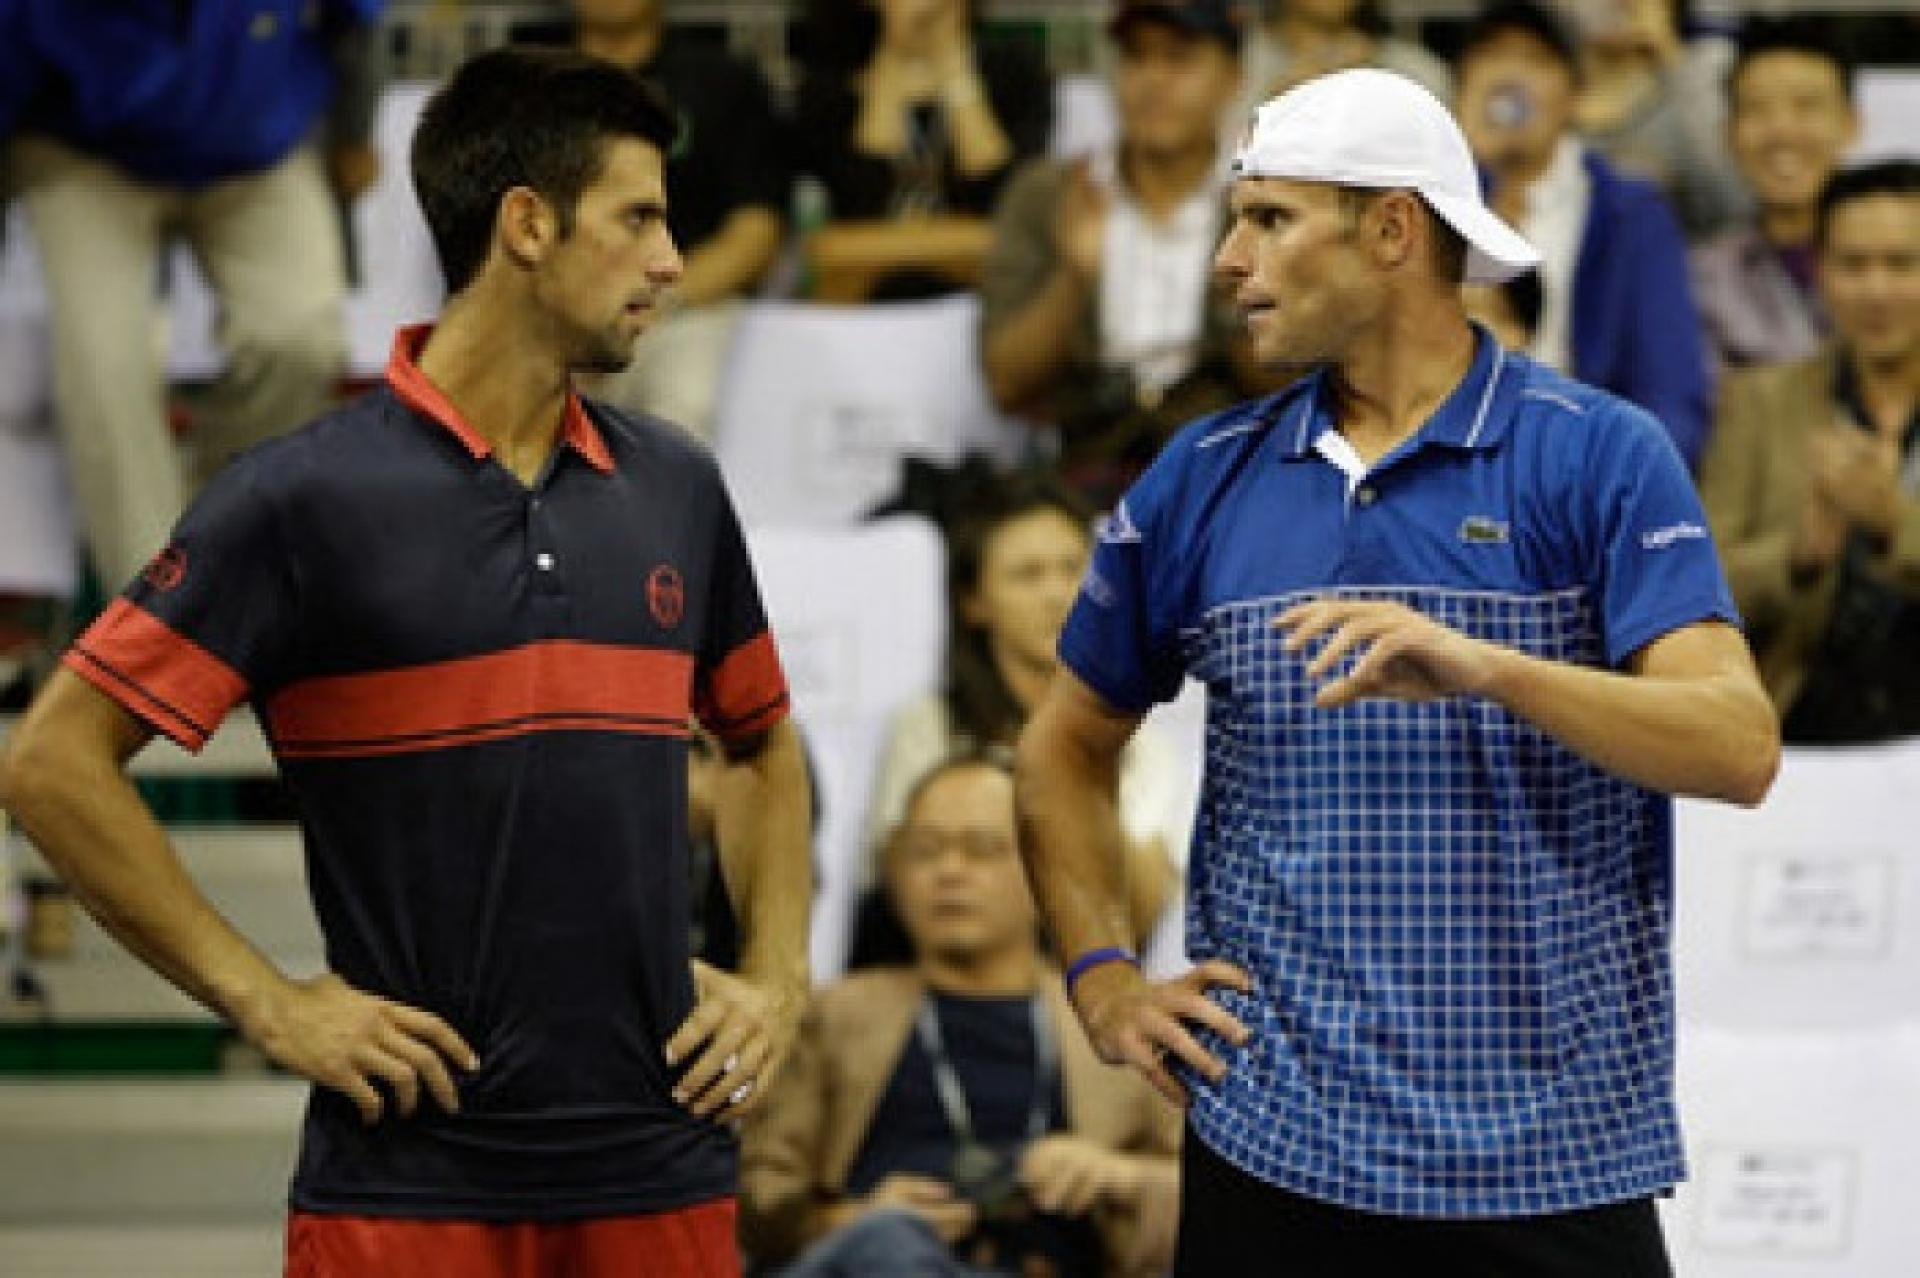 Andy Roddick entered into a heated argument with Novak Djokovic post match